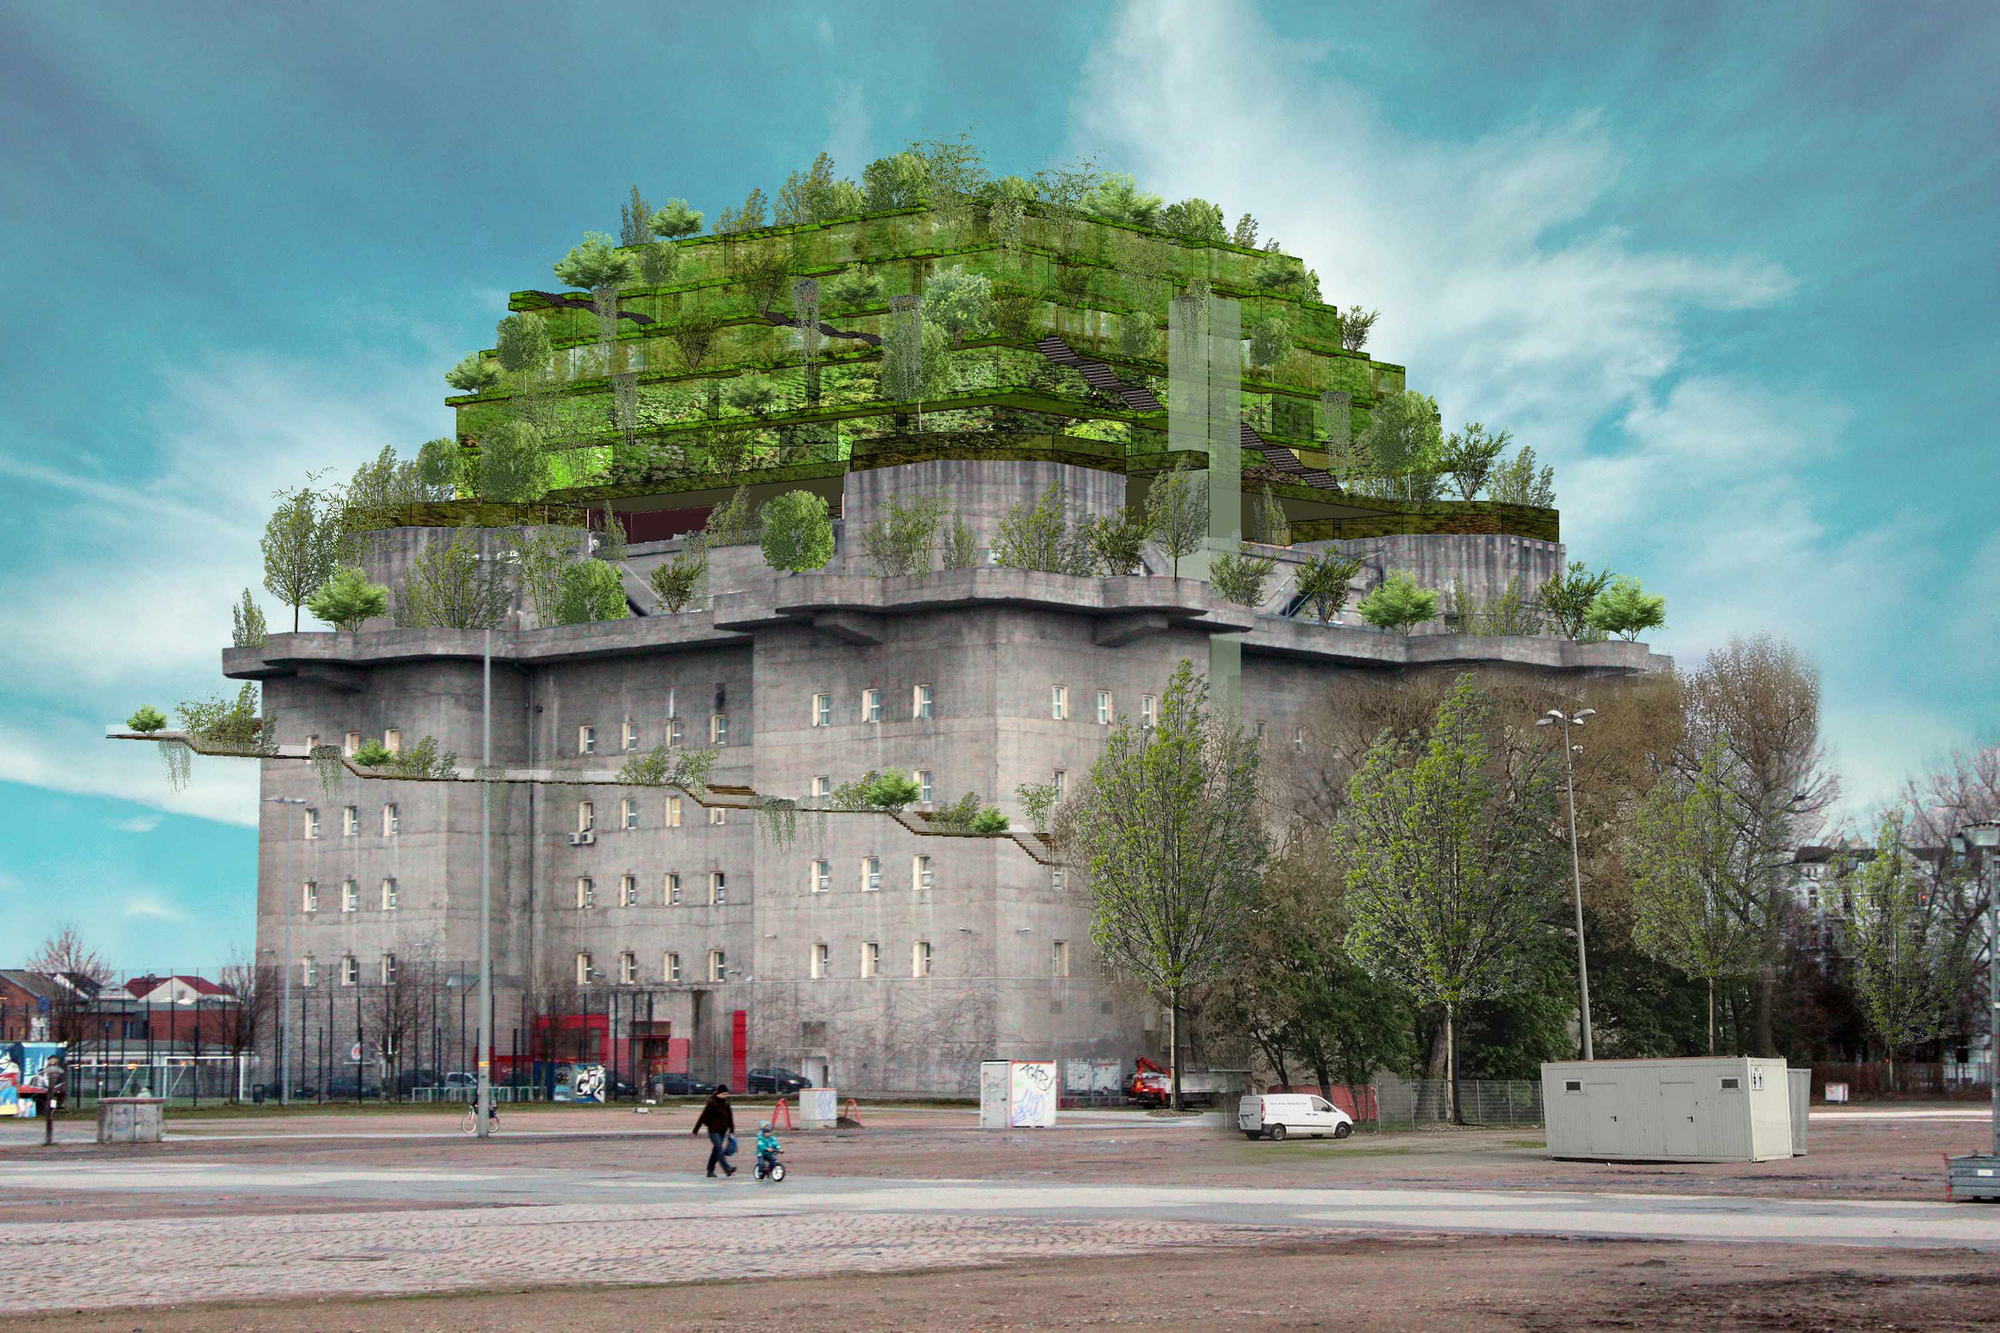 """From War Relic to Mixed-Use: Plans to Build a """"Green ..."""